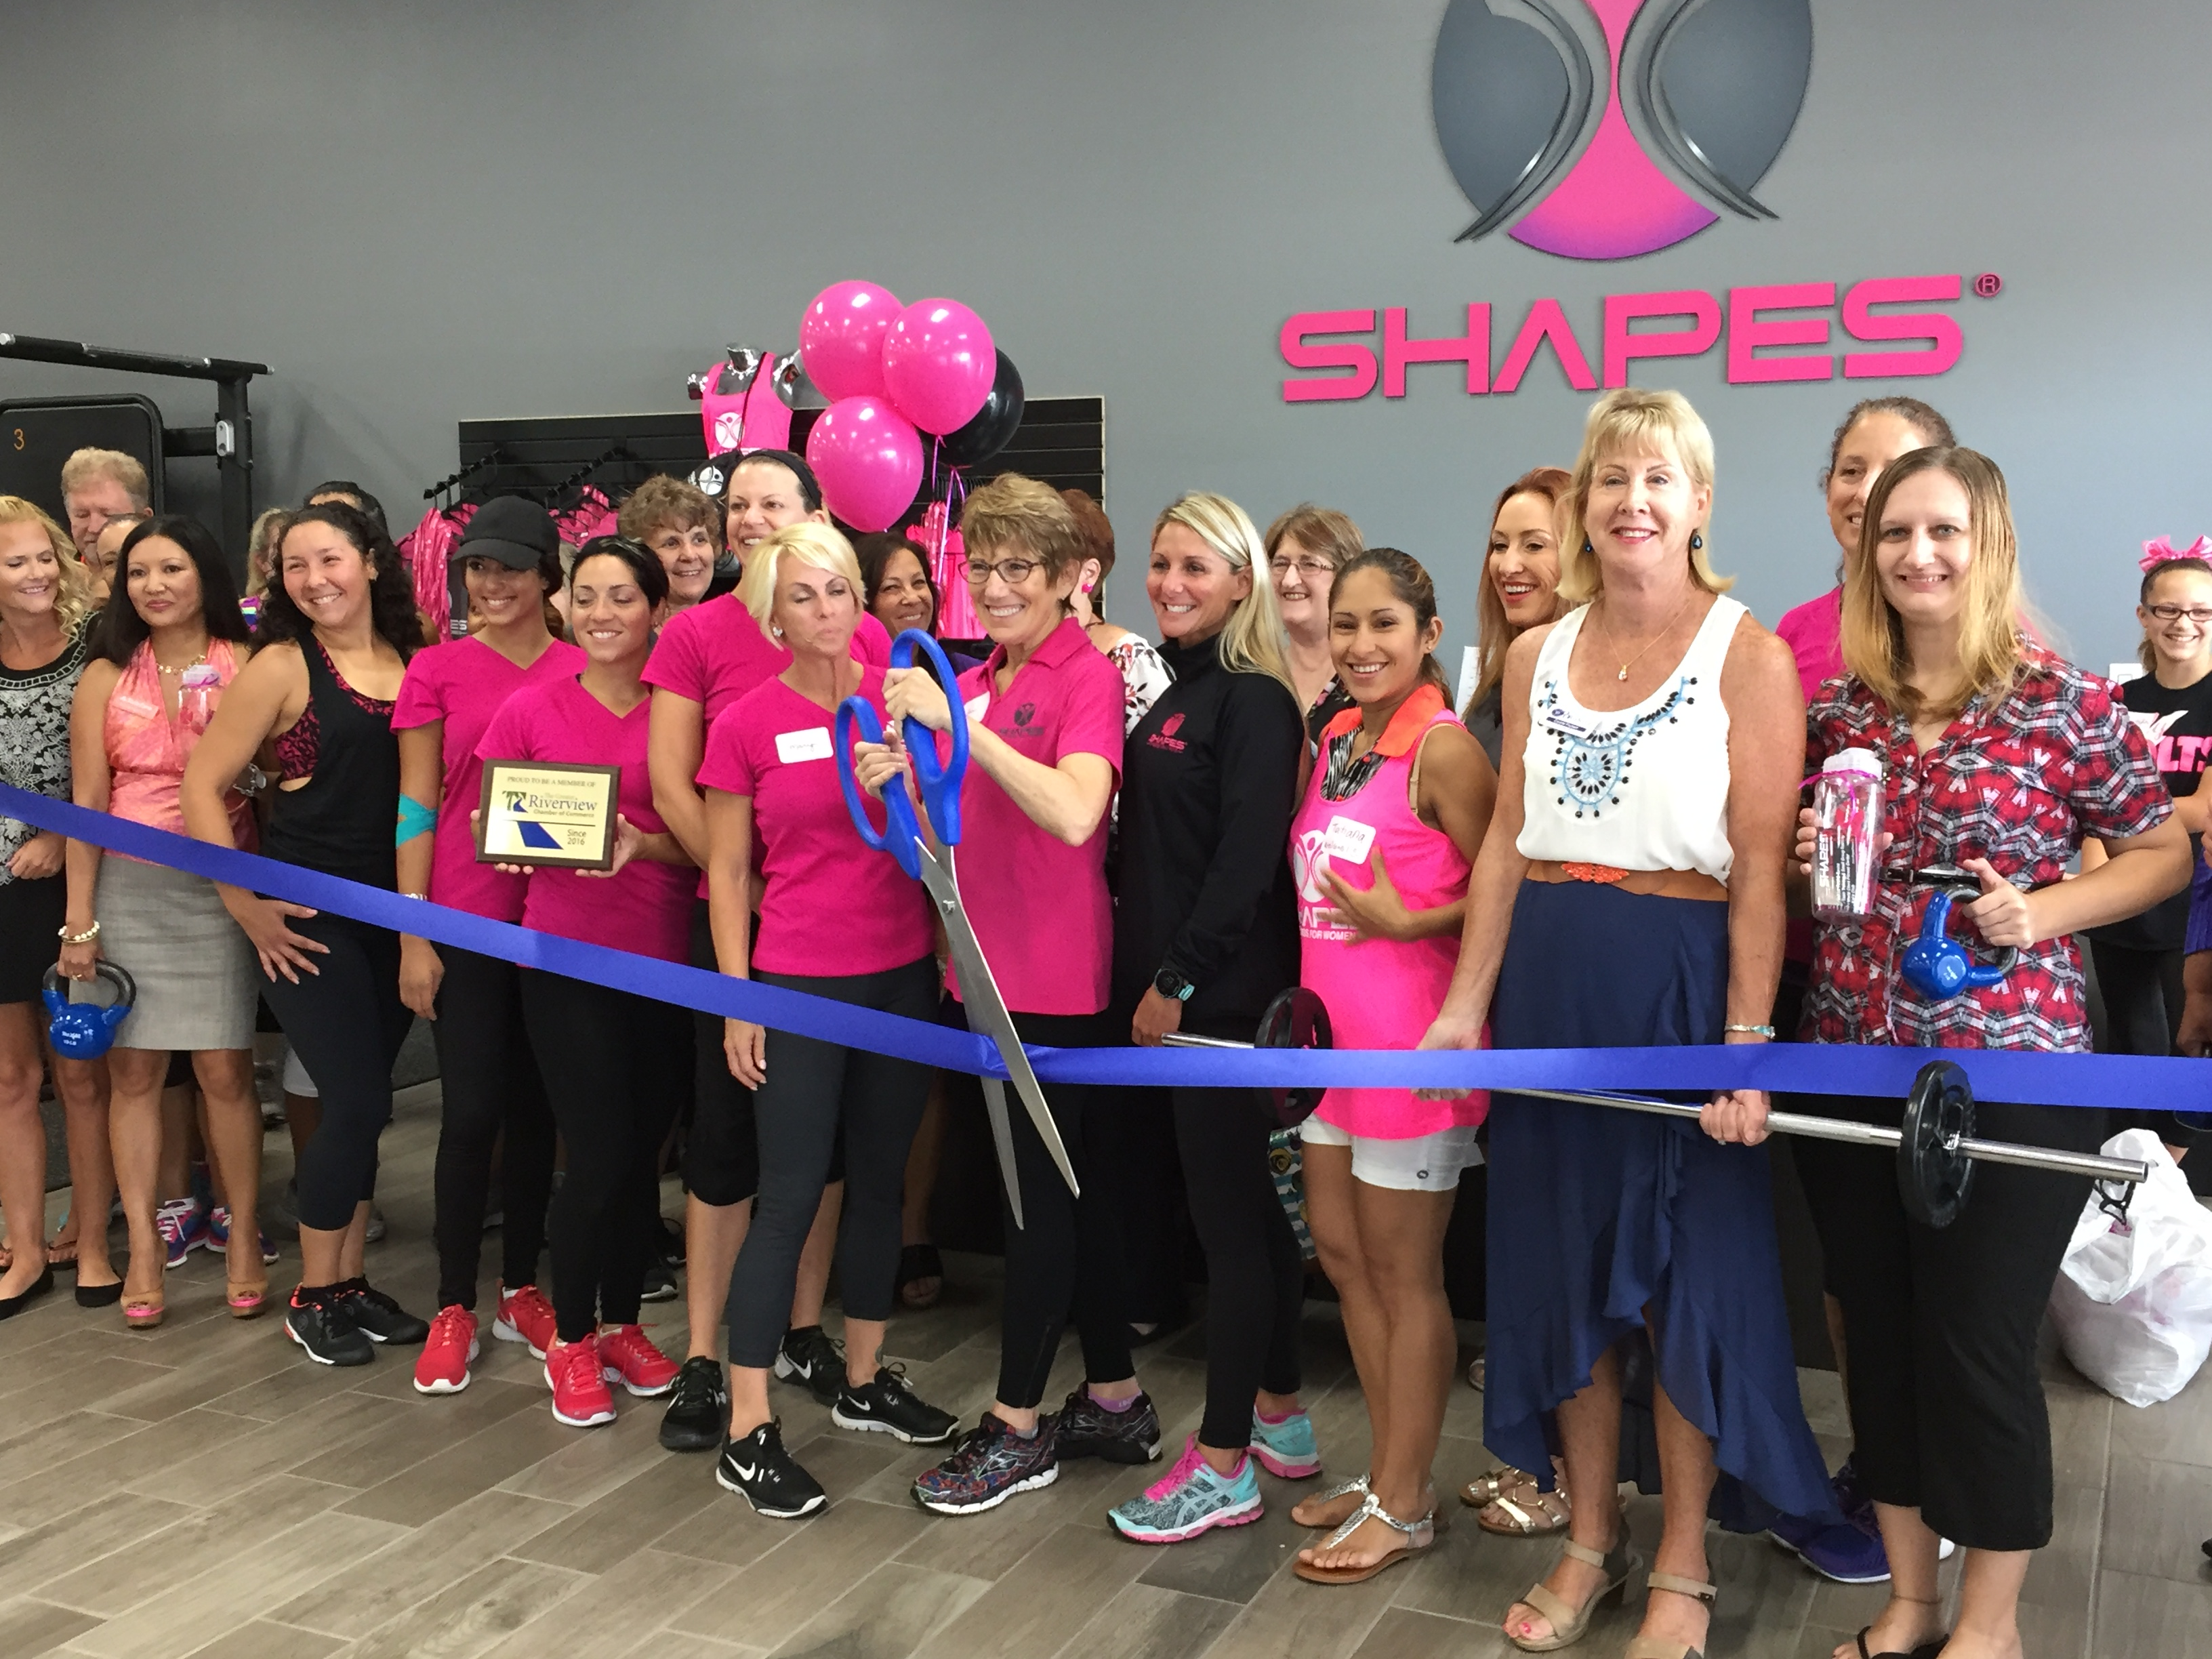 Fitness Center Membership Shapes Fitness For Women Franchise Opens In Riverview, Florida